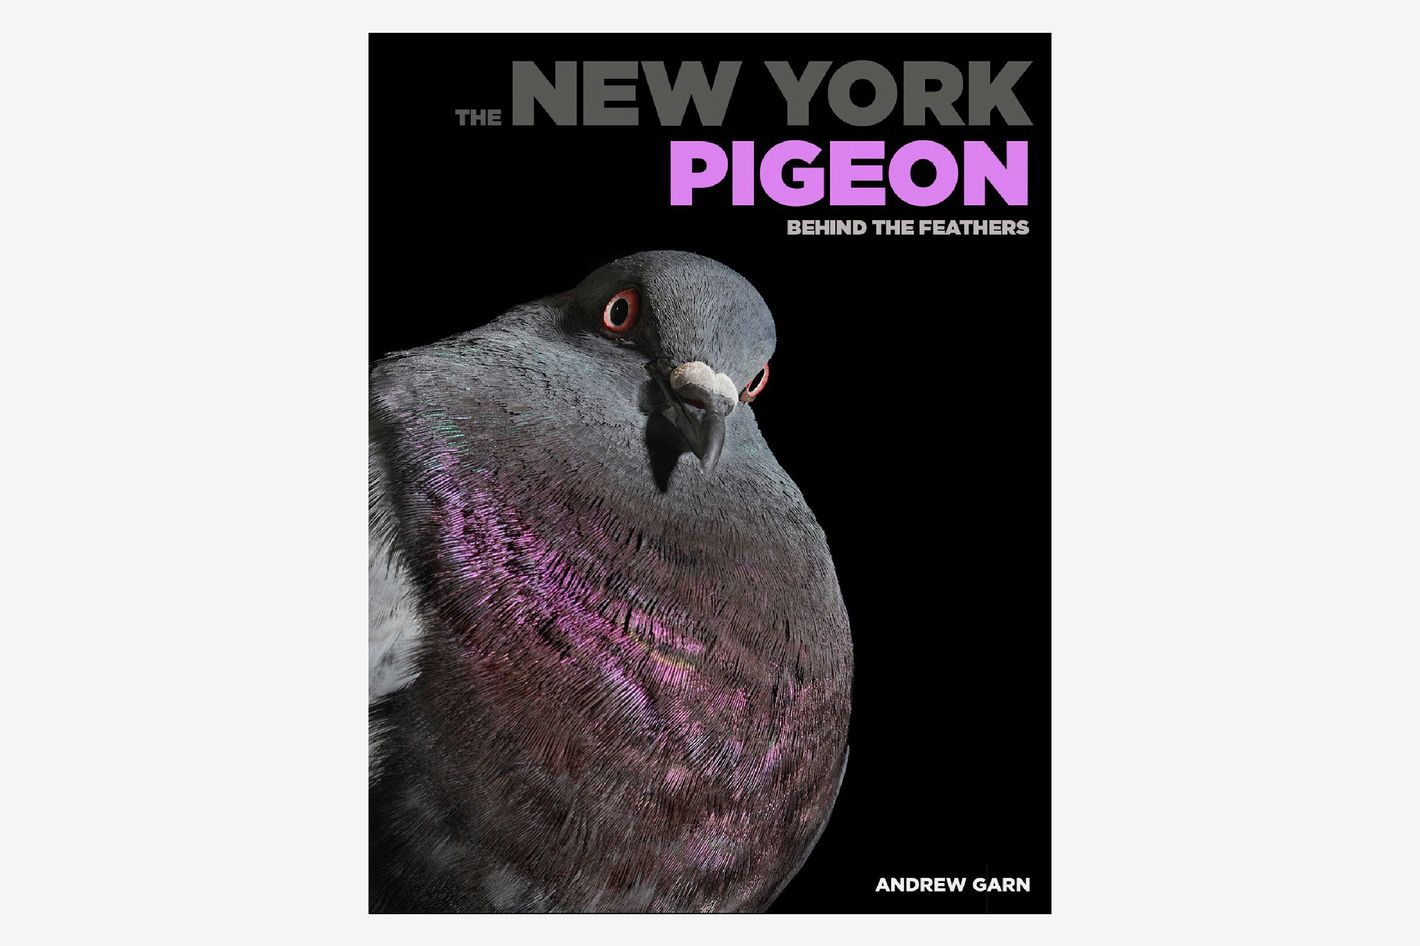 The New York Pigeon: Behind the Feathers by Andrew Garn